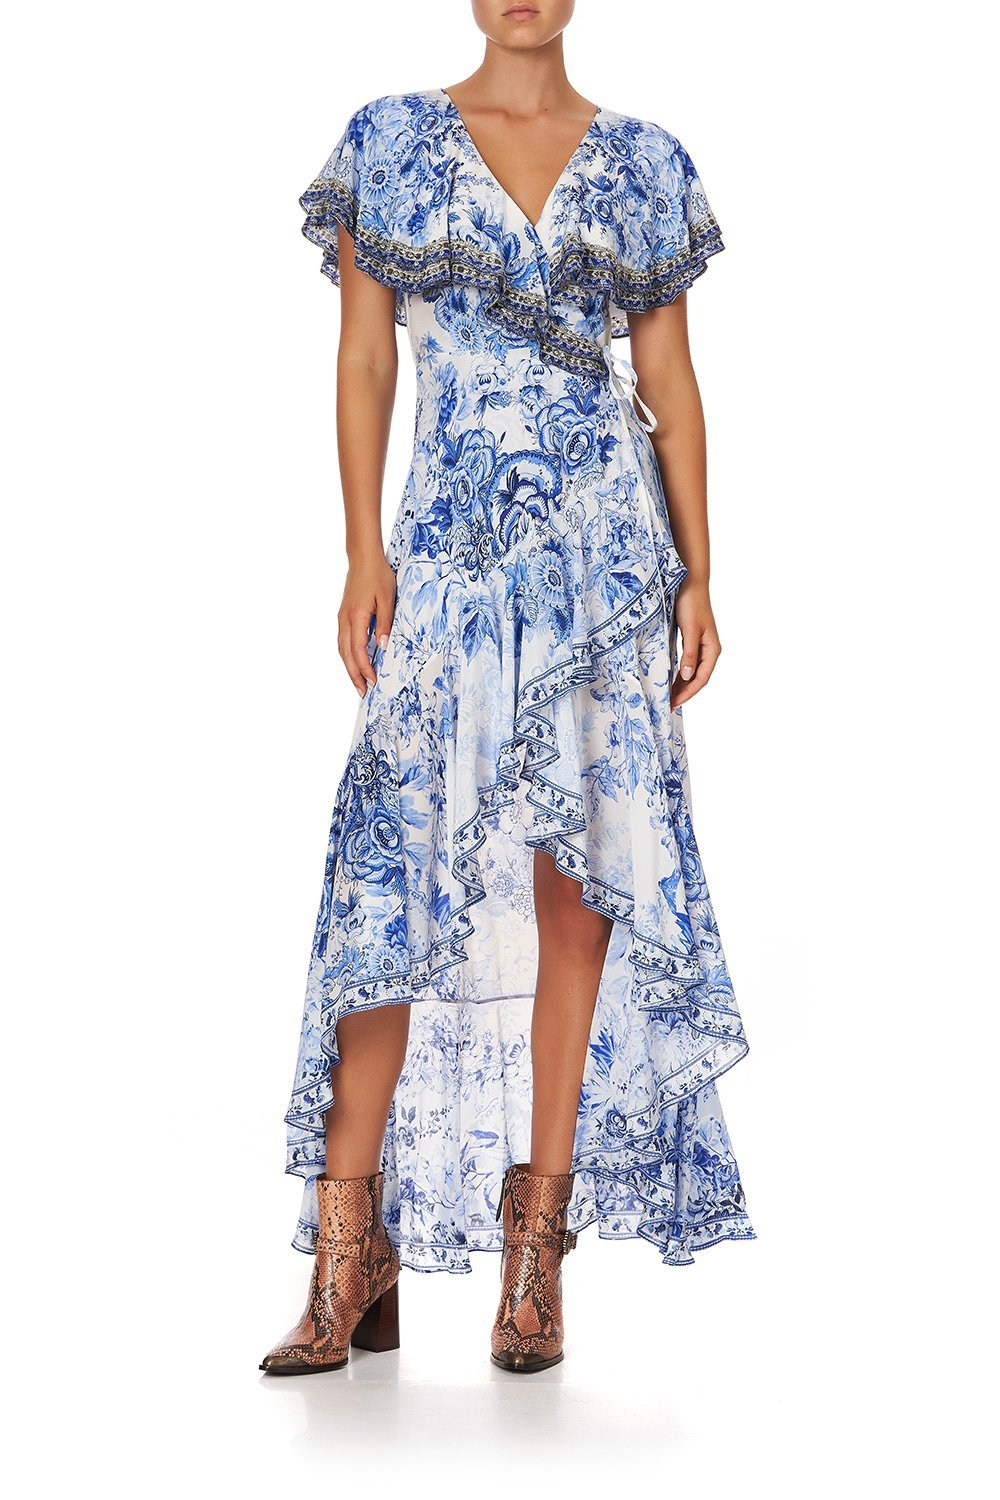 FRILL SLEEVE LONG DRESS HIGH TEA